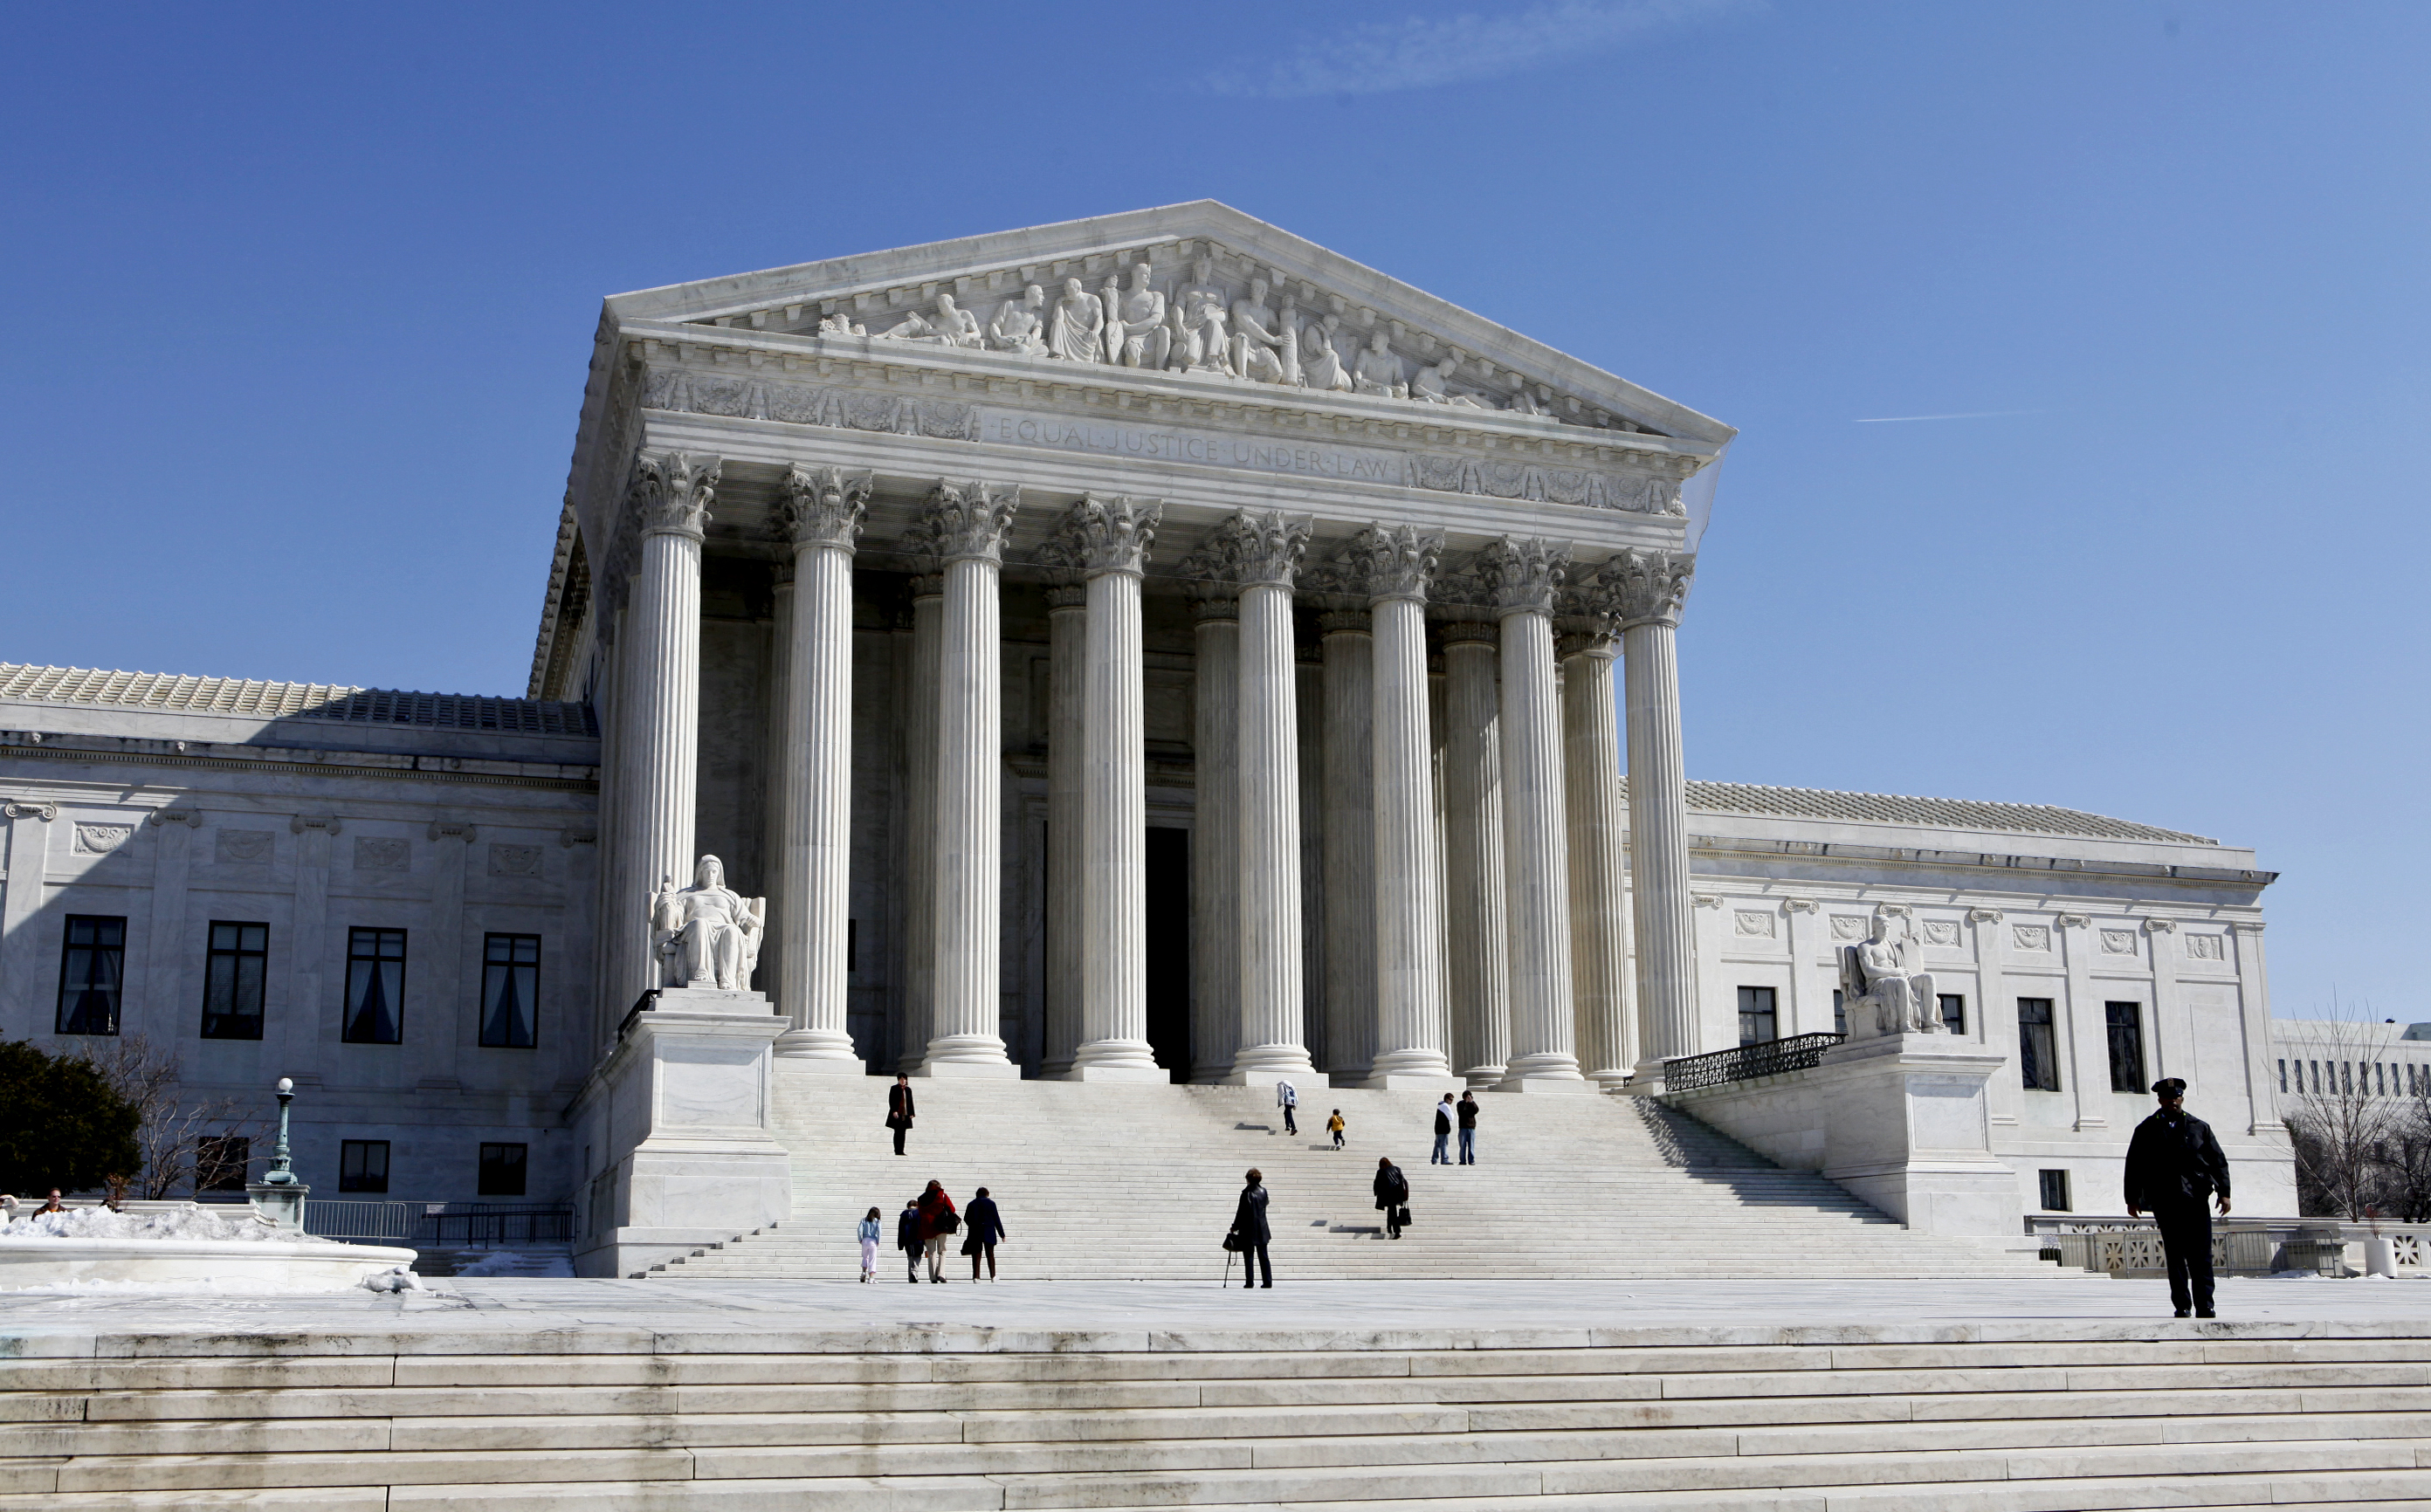 The U.S. Supreme Court balanced the rights of a religious institution with the rights of LGBTQ families.